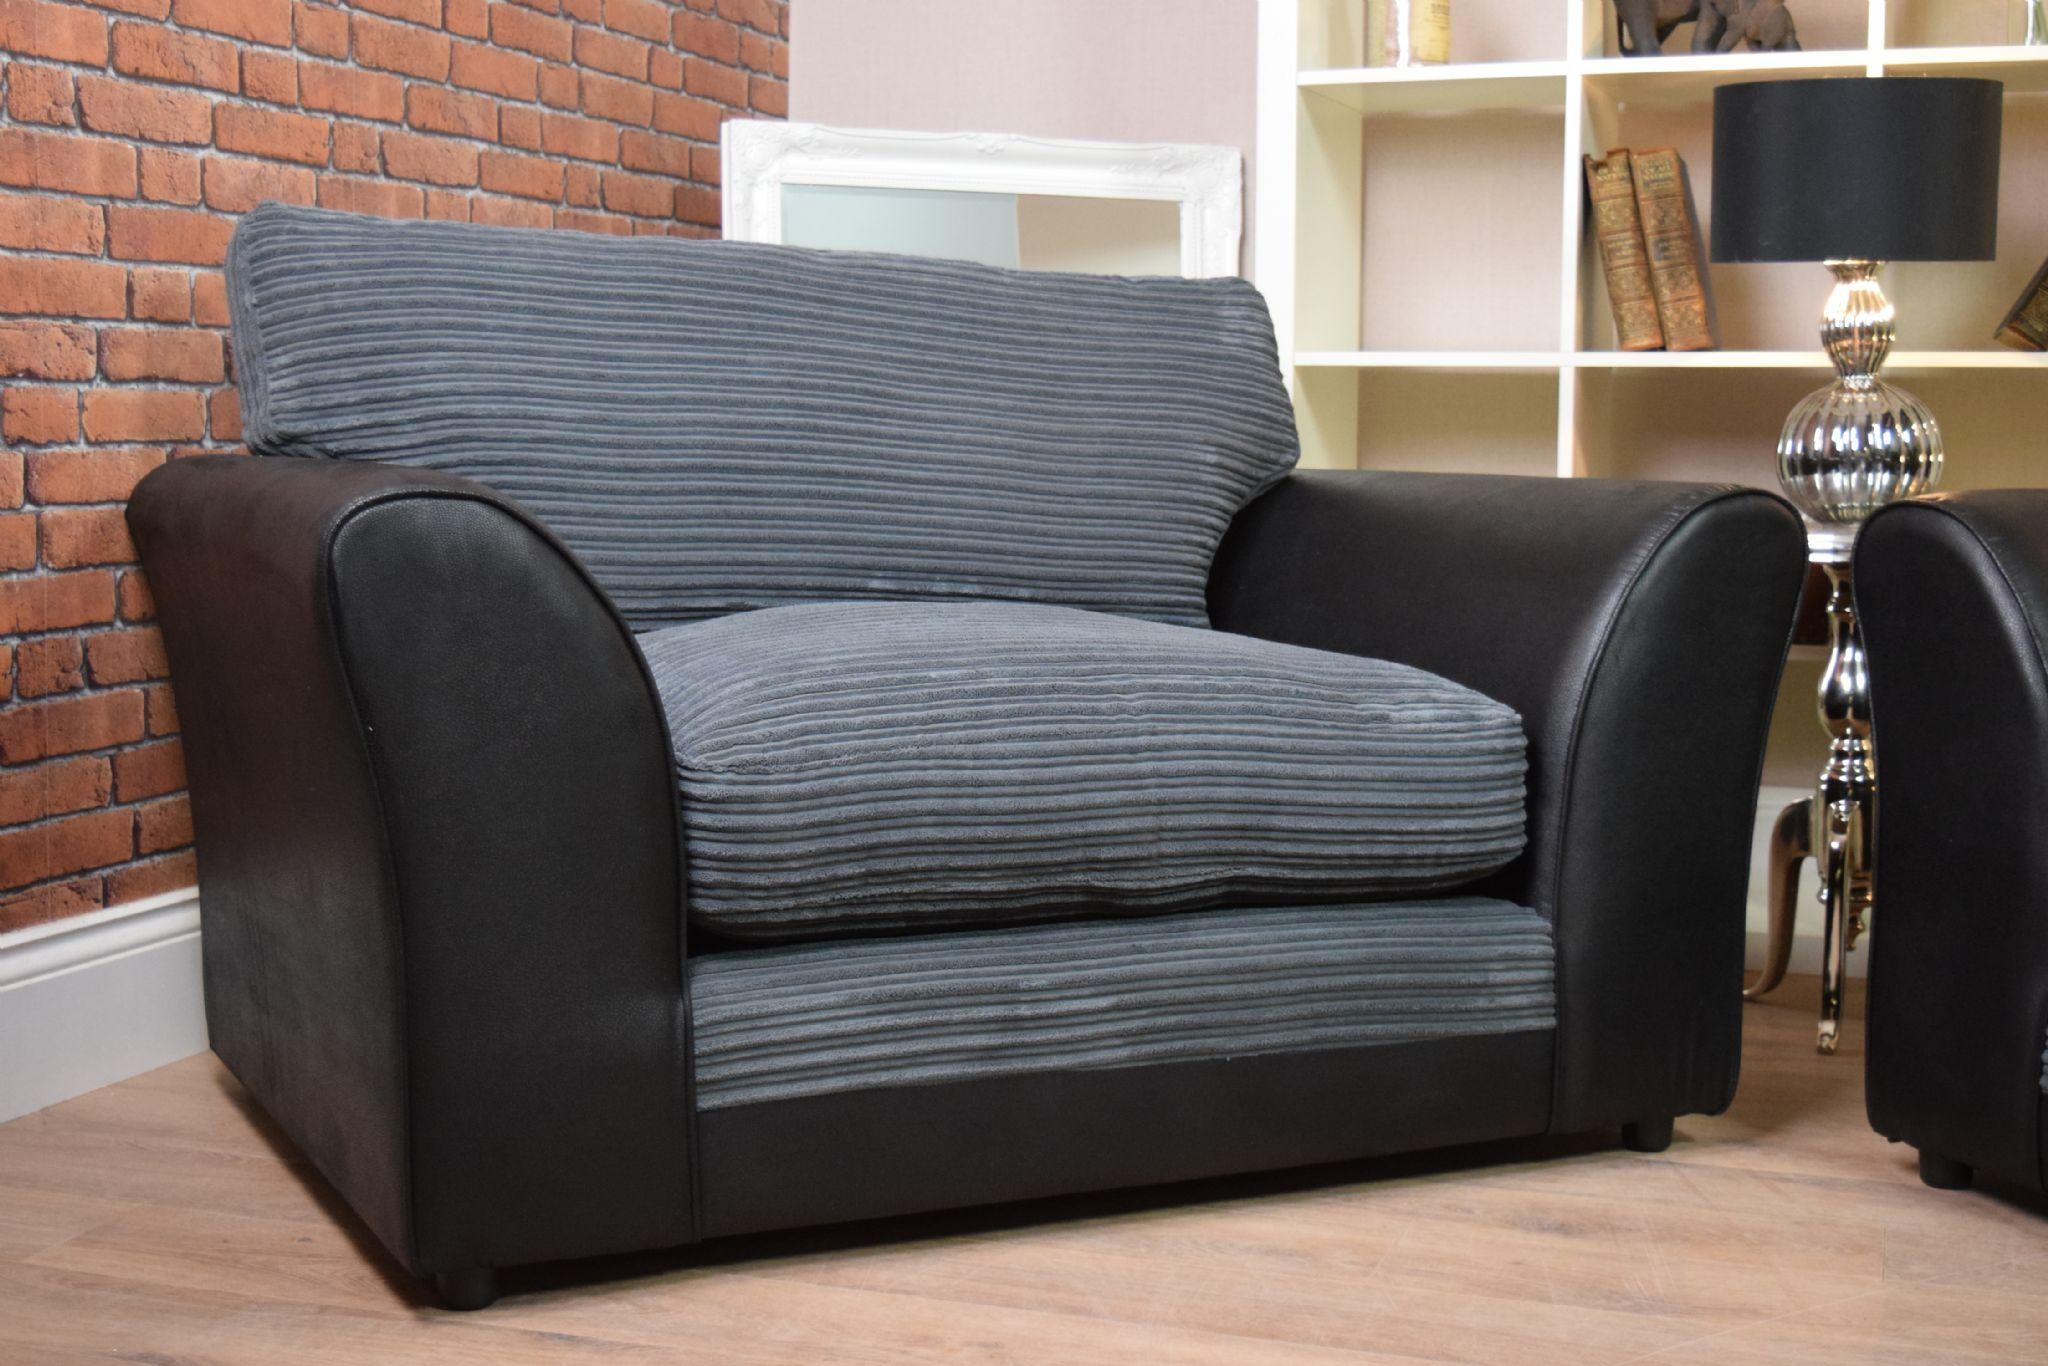 Set Harley Bailey 3 Seater Sofa Cuddle Chair Suite Set – Black Within 3 Seater Sofa And Cuddle Chairs (View 15 of 20)